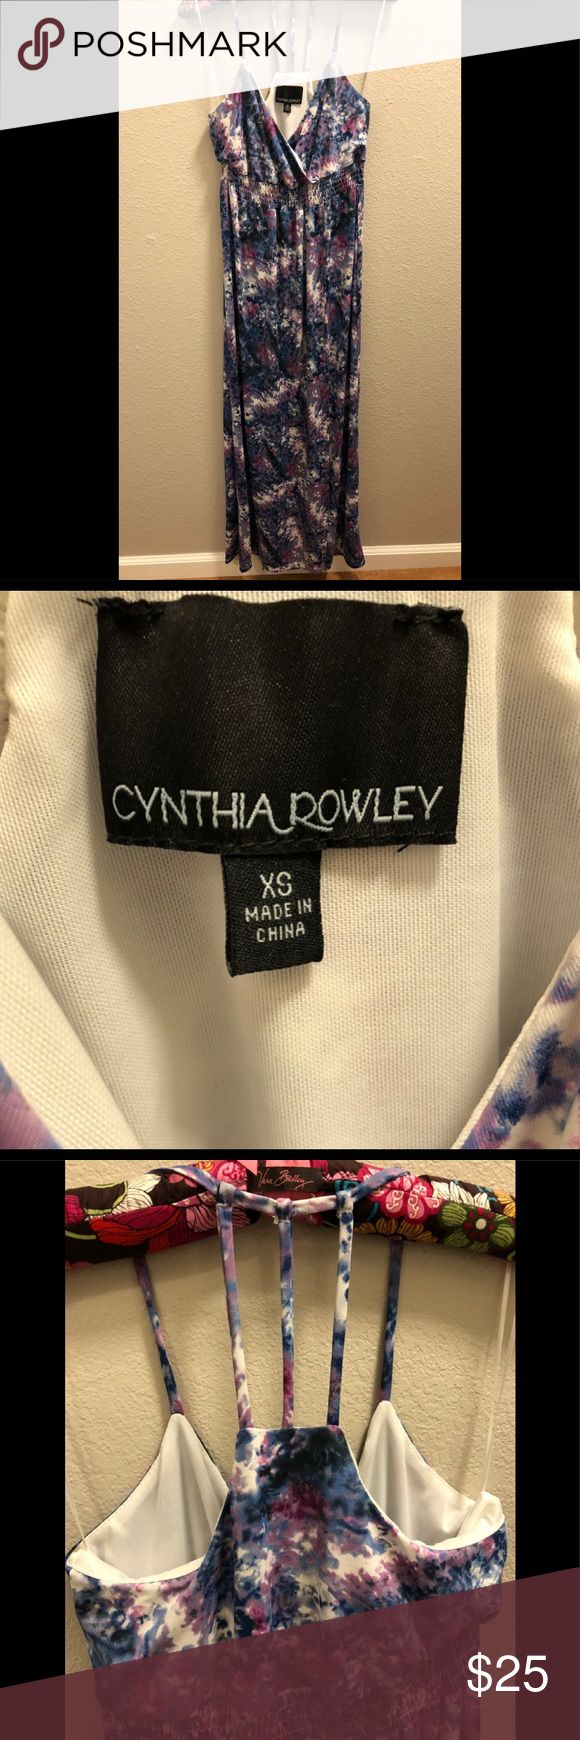 Cynthia Rowley Racerback Maxi Dress Cynthia Rowley Maxi Dress It has a lovely watercolor-inspired print in blue, purple and white, with a smocked, elasticized empire waistband which flows down to a full length.  The bust has a faux wrap style which mirrors the faux wrap style of the skirt.  Size is XS   *There is a stain in the inside of the top of the dress as shown in one of the pictures* Cynthia Rowley Dresses Maxi